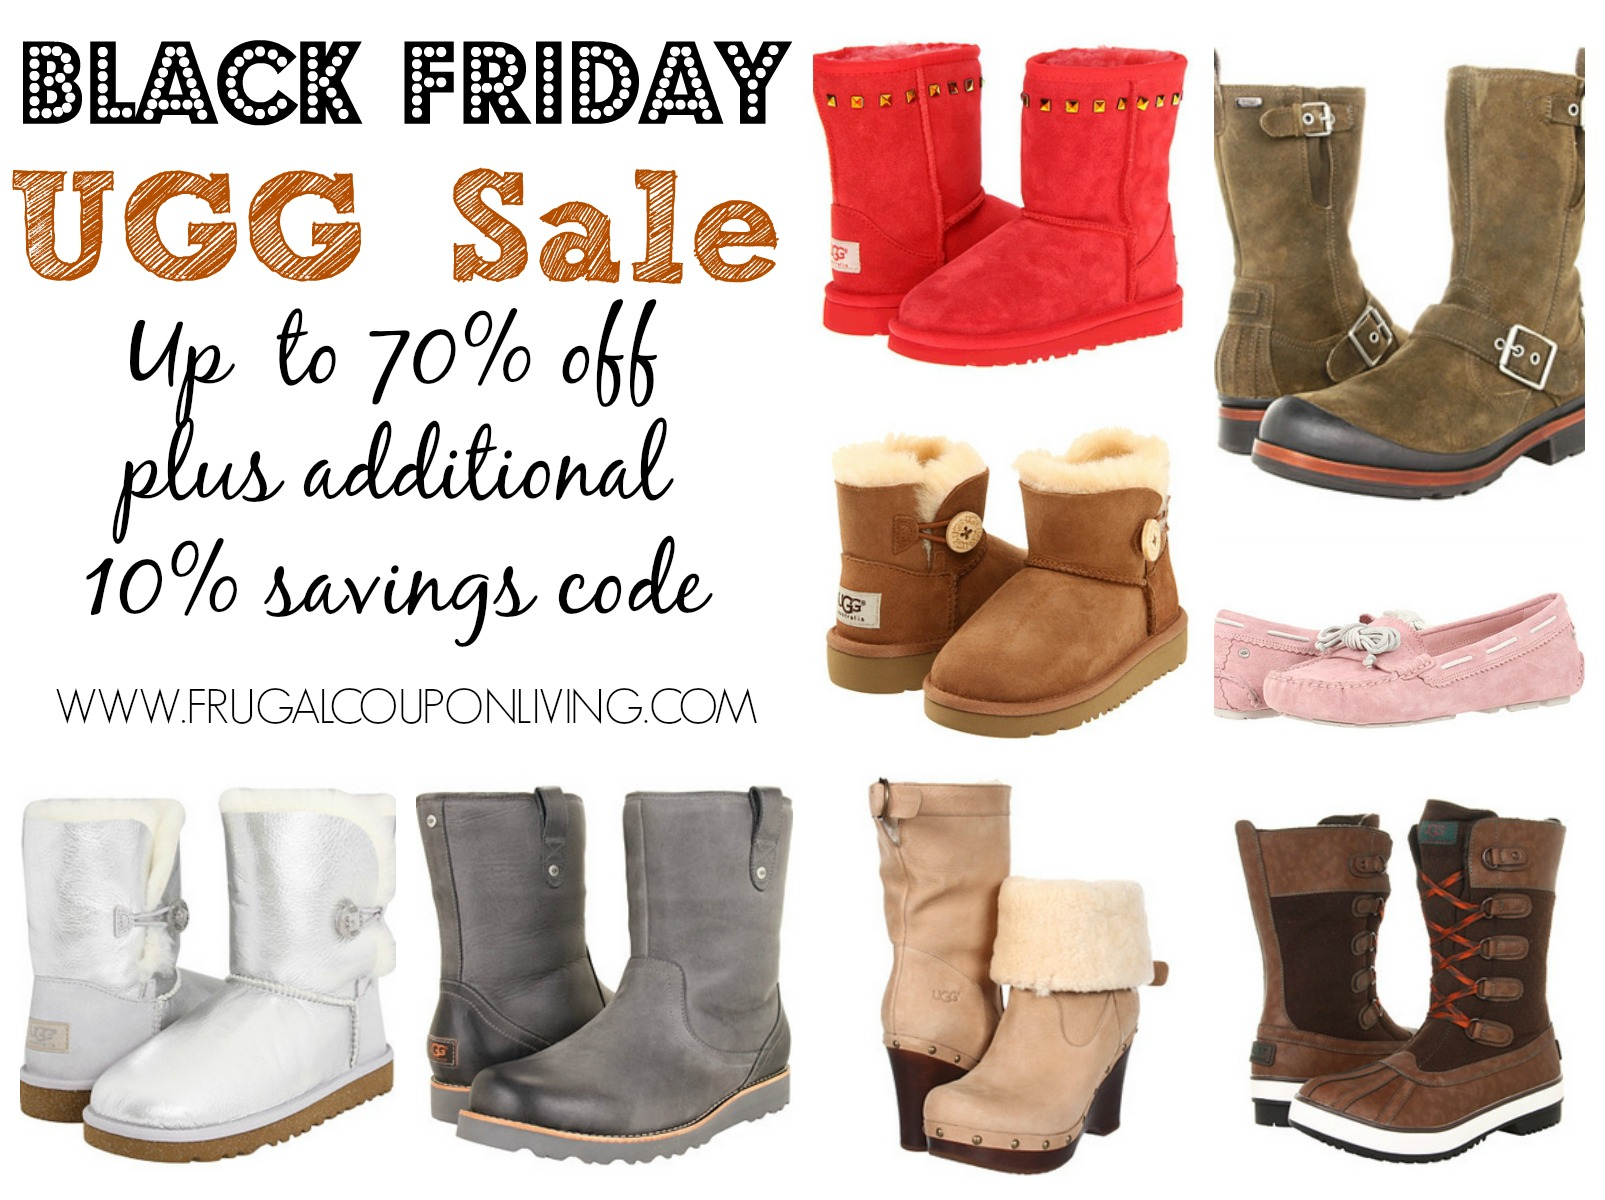 Black Friday Sale On Winter Boots Eseis